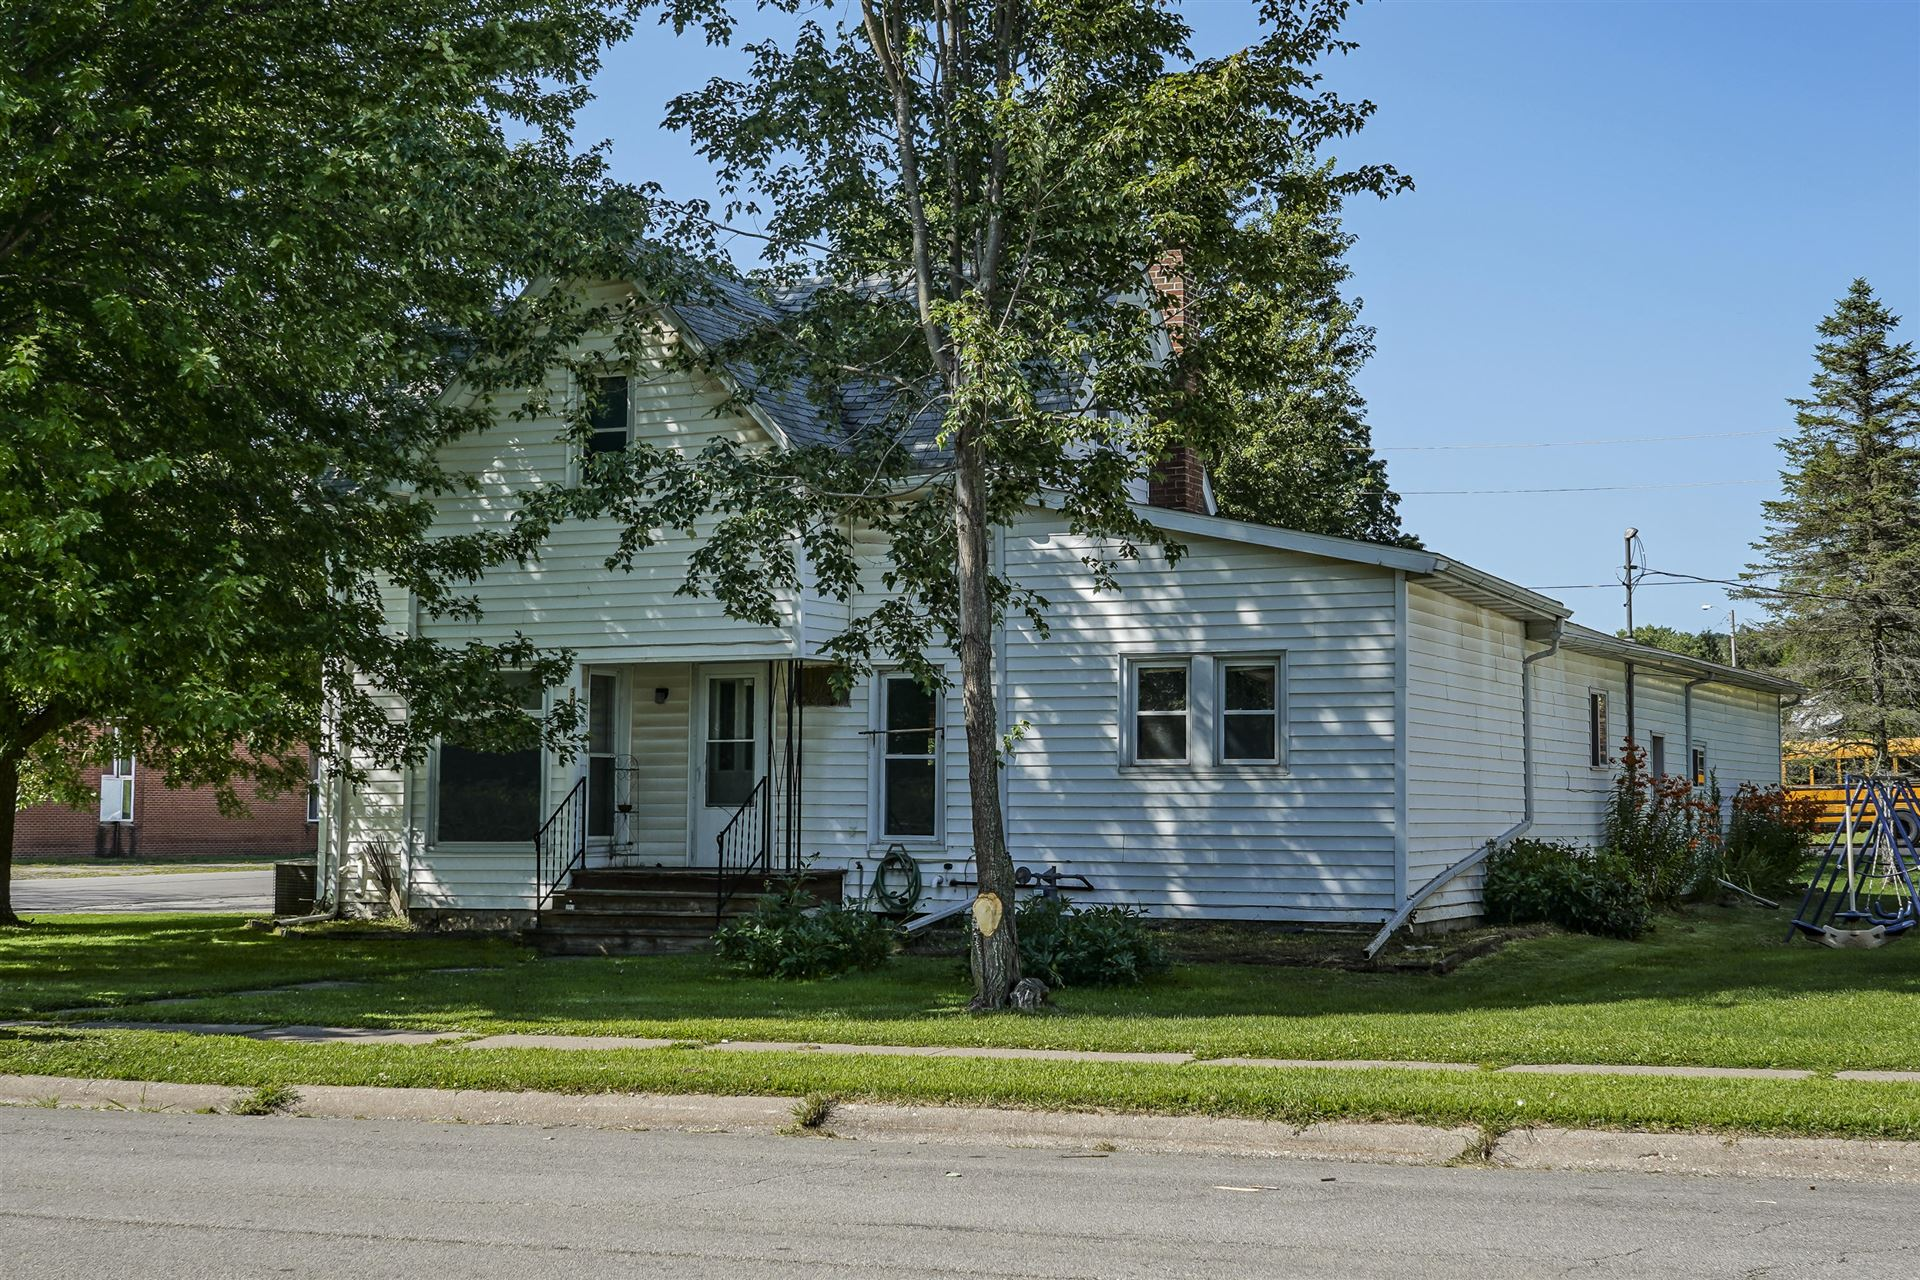 302 Pine St, Soldiers Grove, WI 54655 - MLS#: 1652152